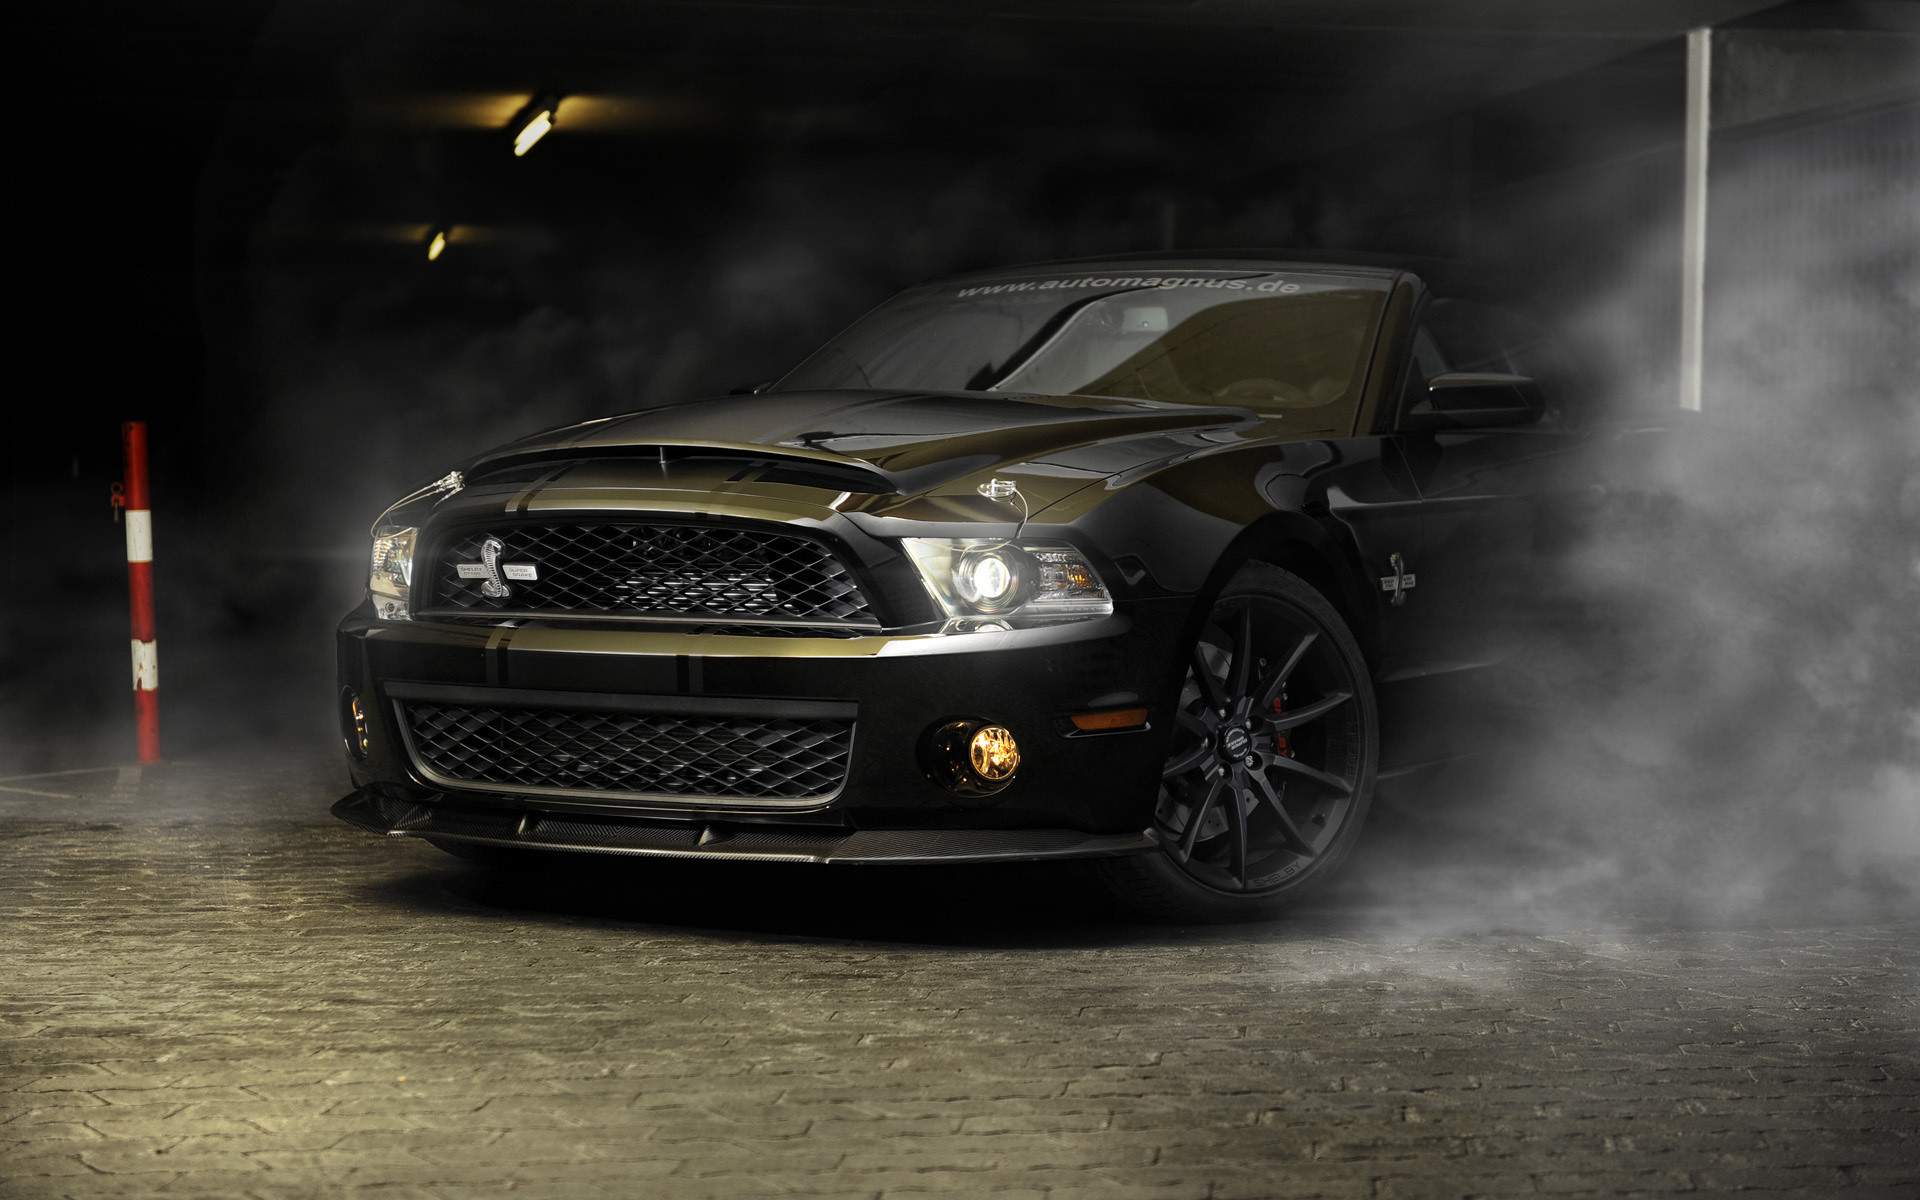 Ford Mustang Wallpapers Pack Download V.516 – KB.iPT PC Wallpapers